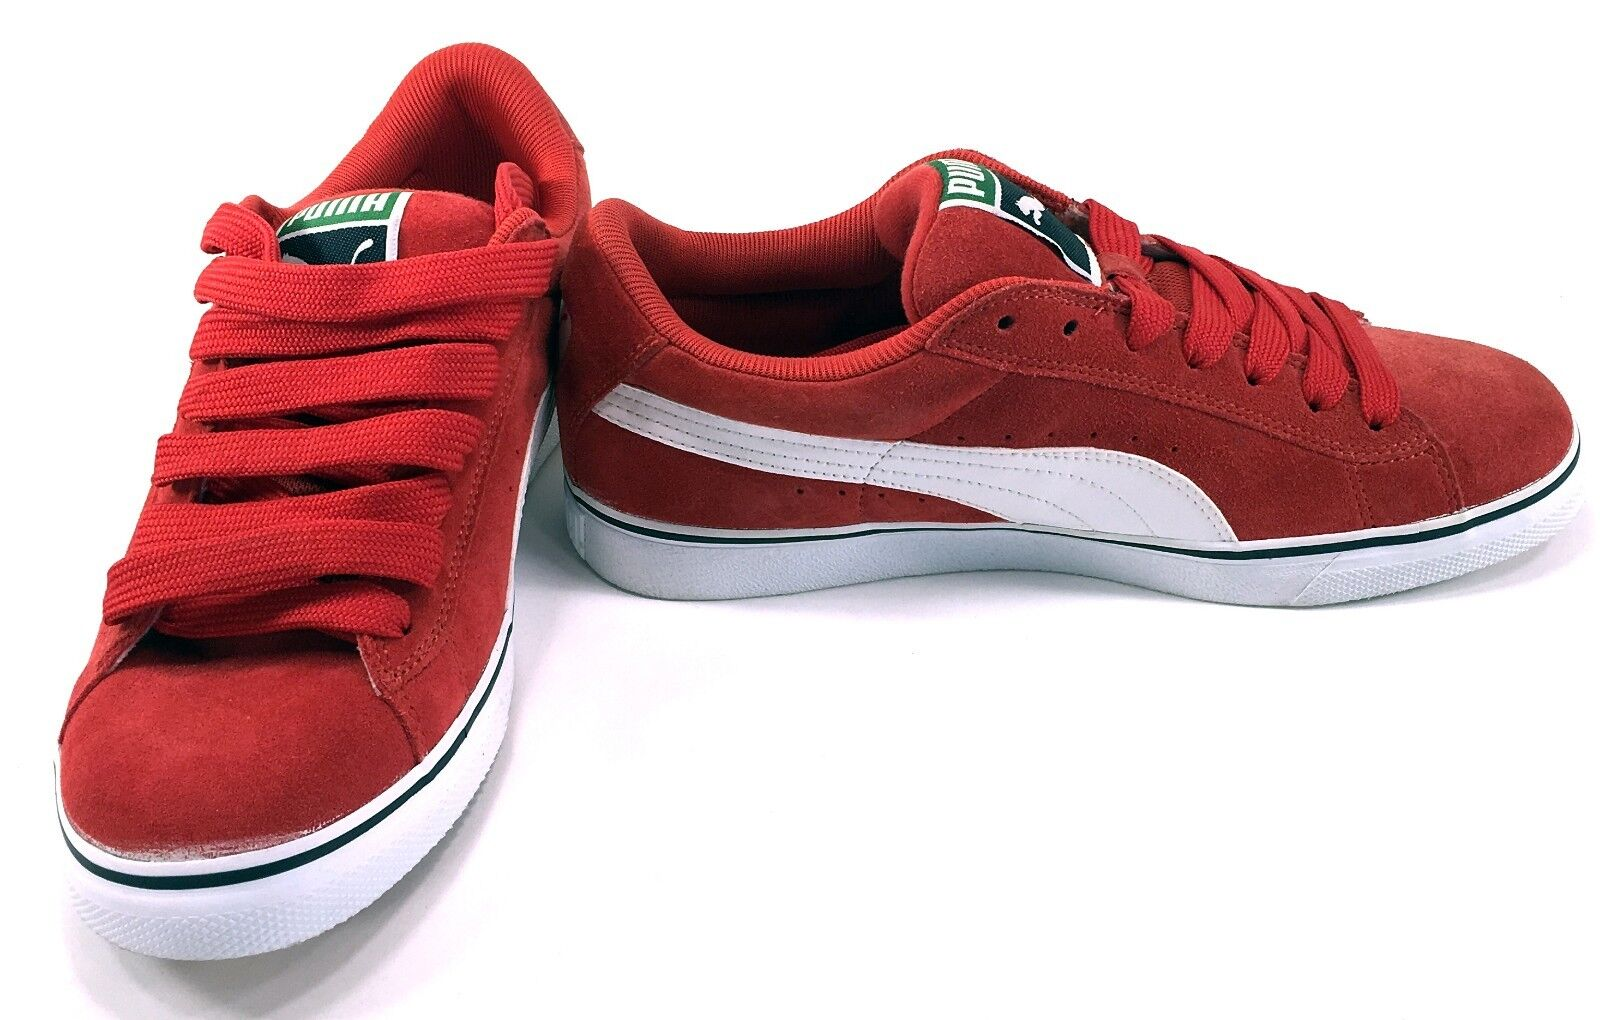 Puma Shoes Suede Classic Vulcan High Risk Red/White Sneakers Comfortable Casual wild